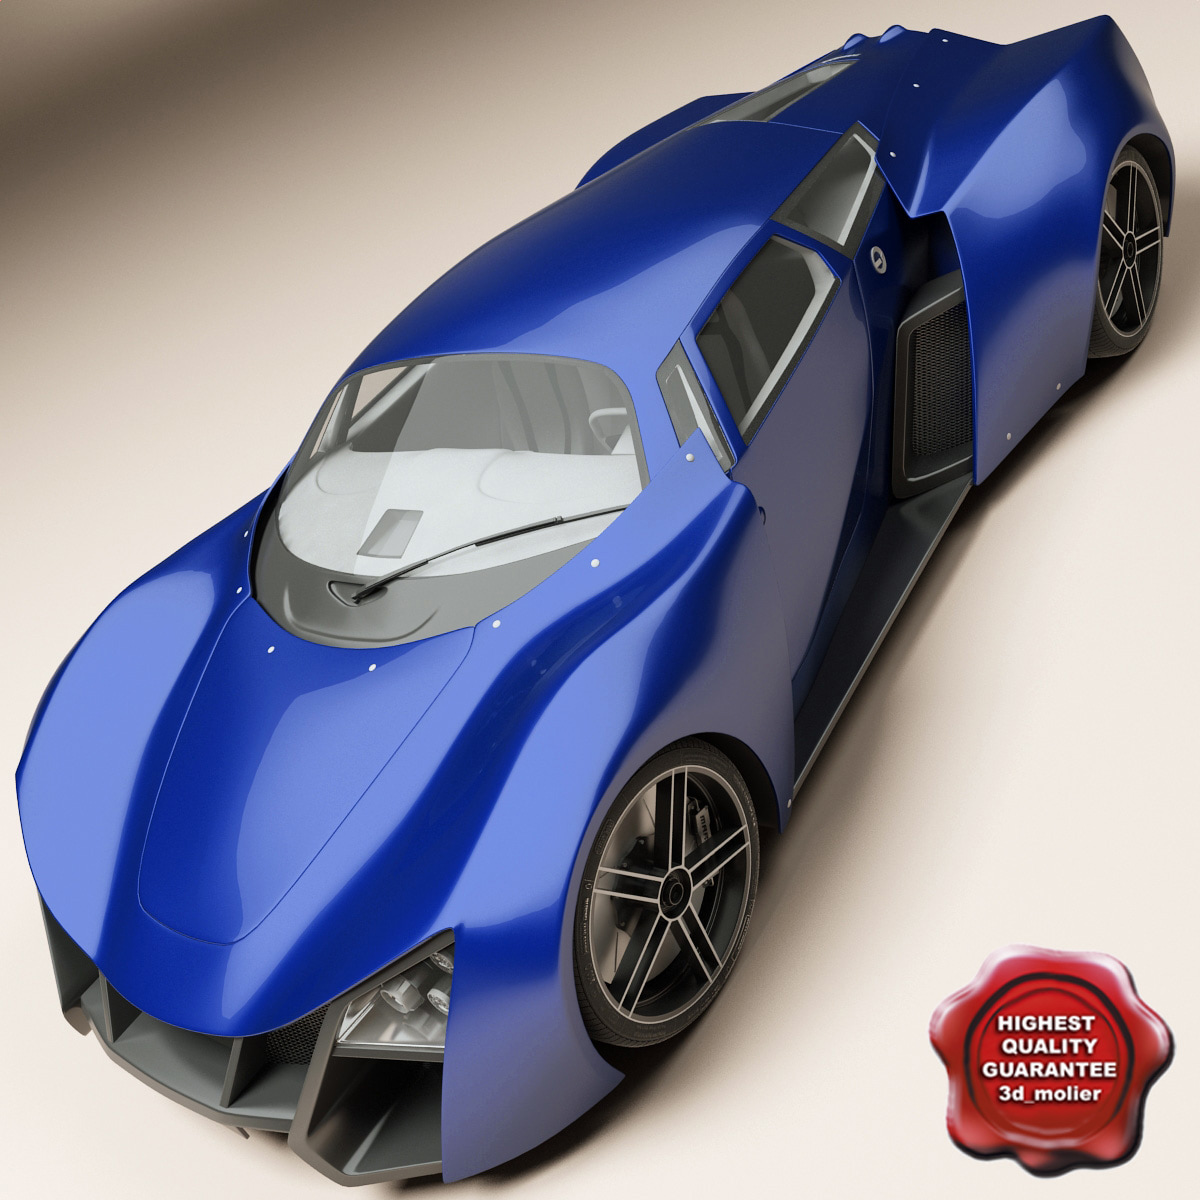 Marussia_B2_Super_Car_00.jpg